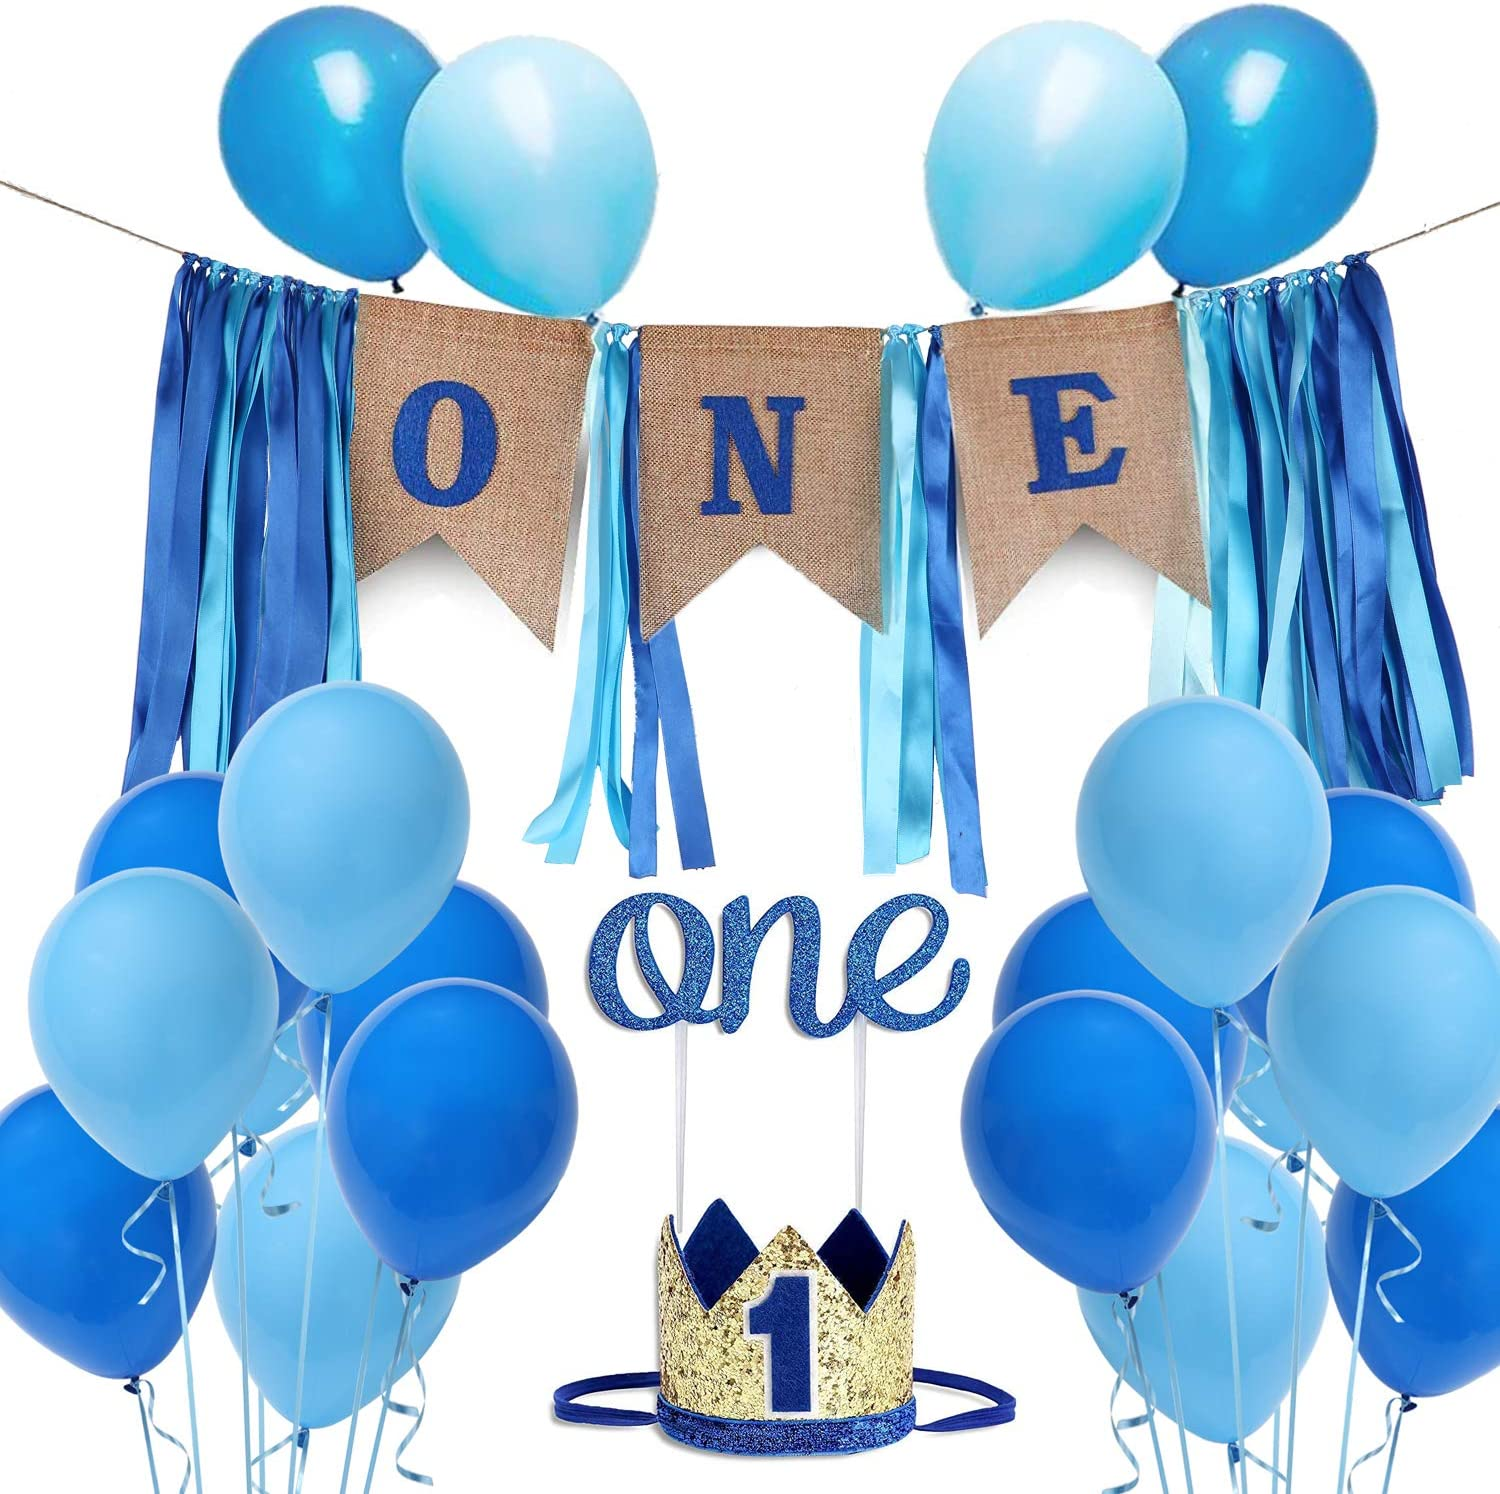 U-LIAN 1st Birthday Boy Decoration Set One Blue Birthday High Chair Banner, Glitter Cake Topper, Glitter Crown,20pcs Balloons With Streamers